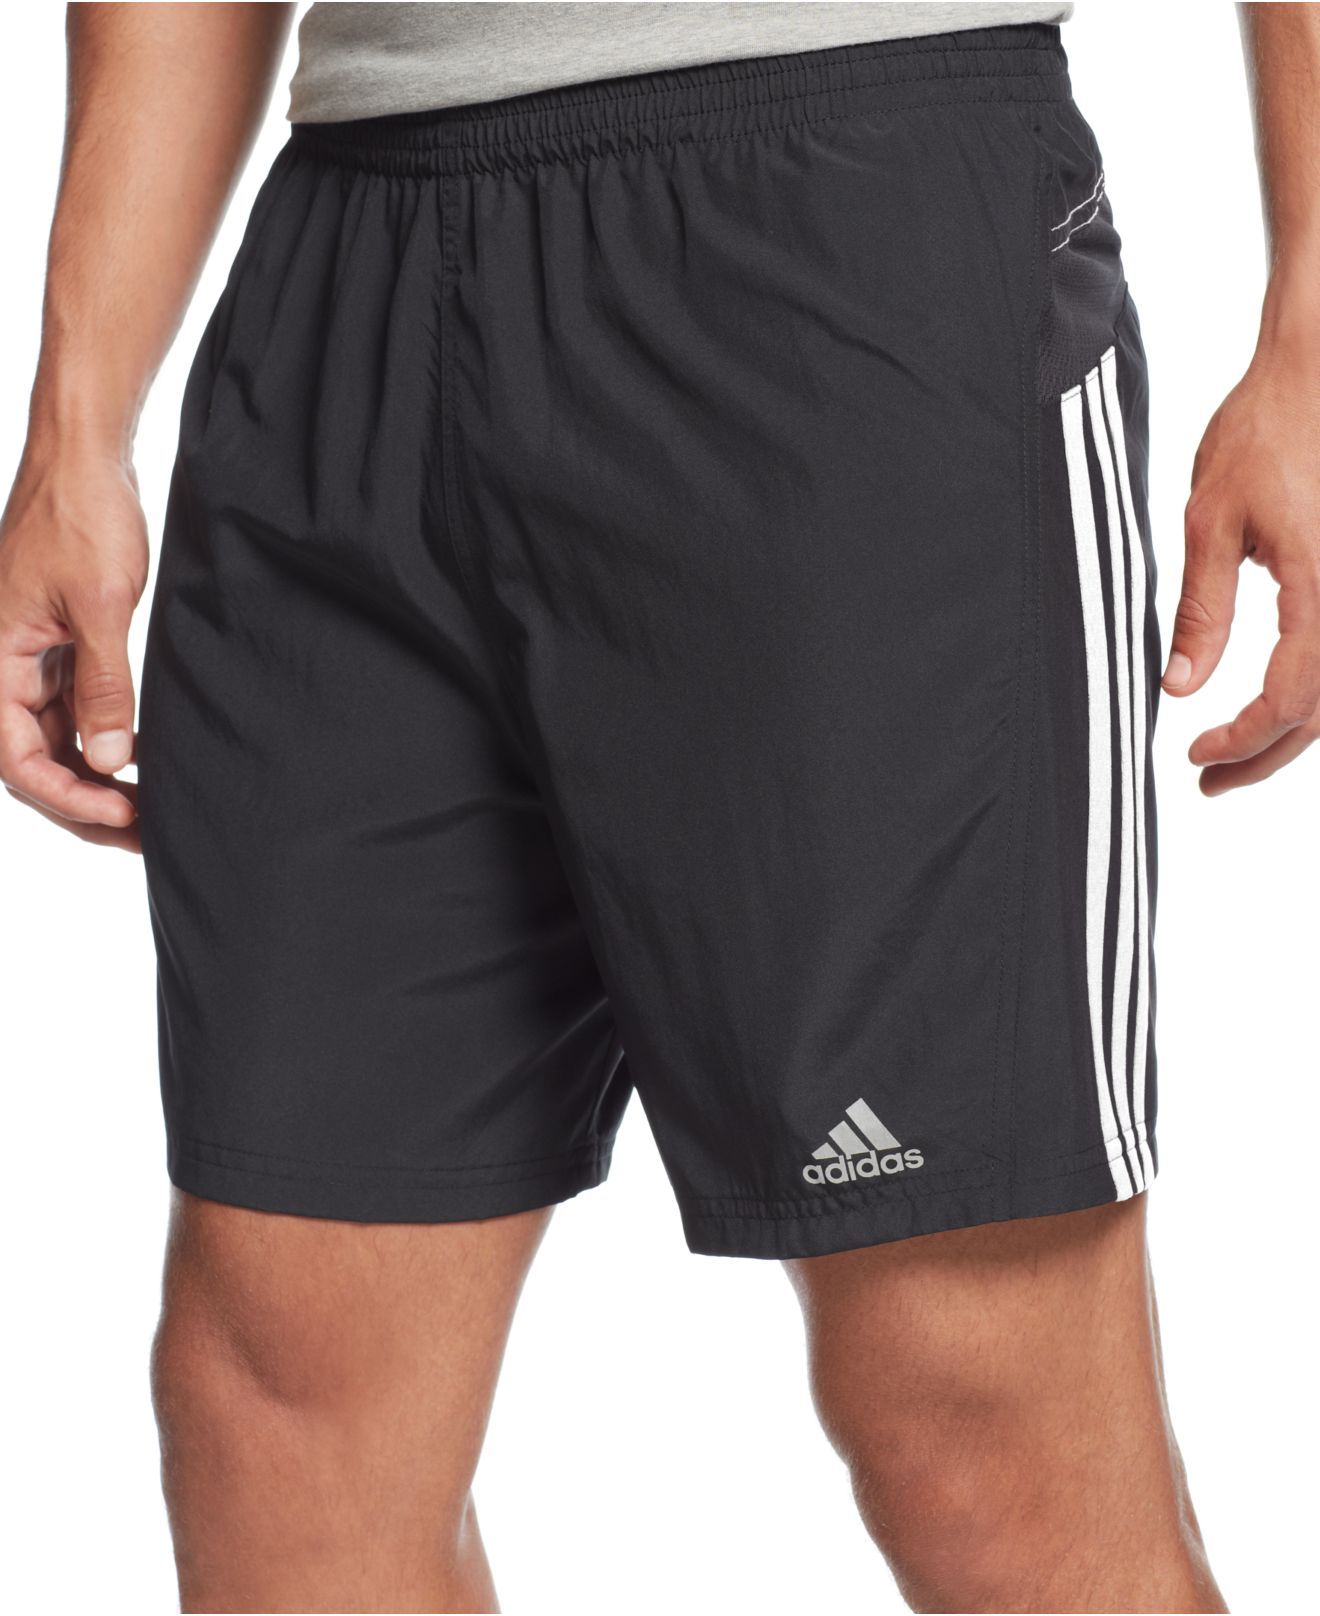 lyst adidas climalite 7 shorts in black for men. Black Bedroom Furniture Sets. Home Design Ideas